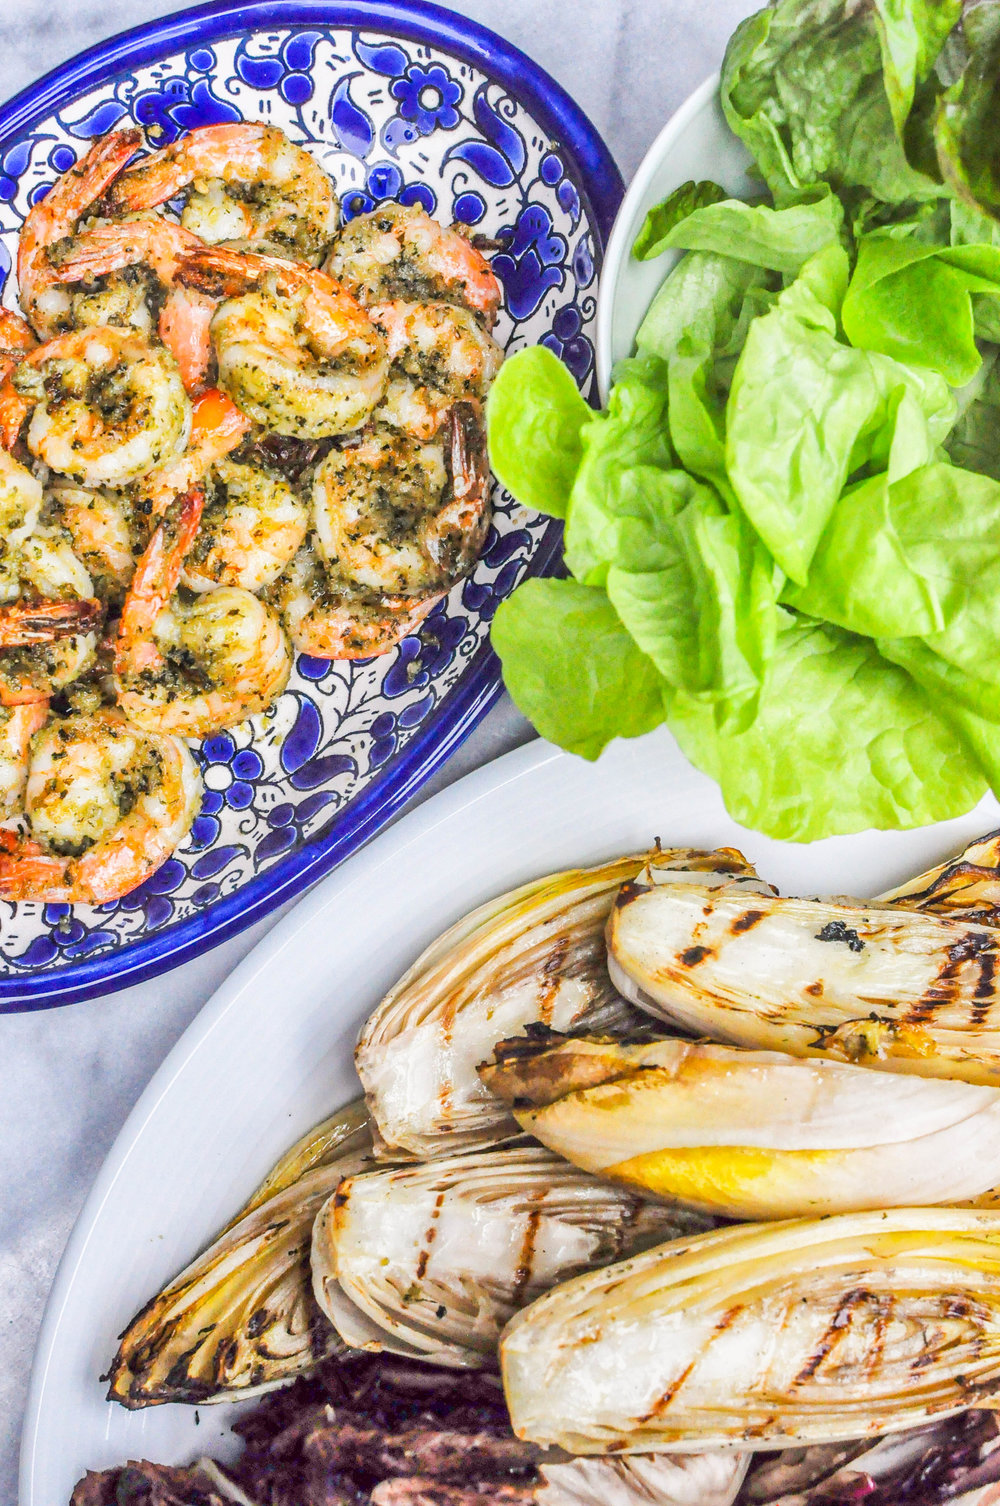 Grilled Shrimp and Endives Recipe from This Healthy Table. Get the recipe here.  - This pesto shrimp recipe is ready in under 30 minutes!